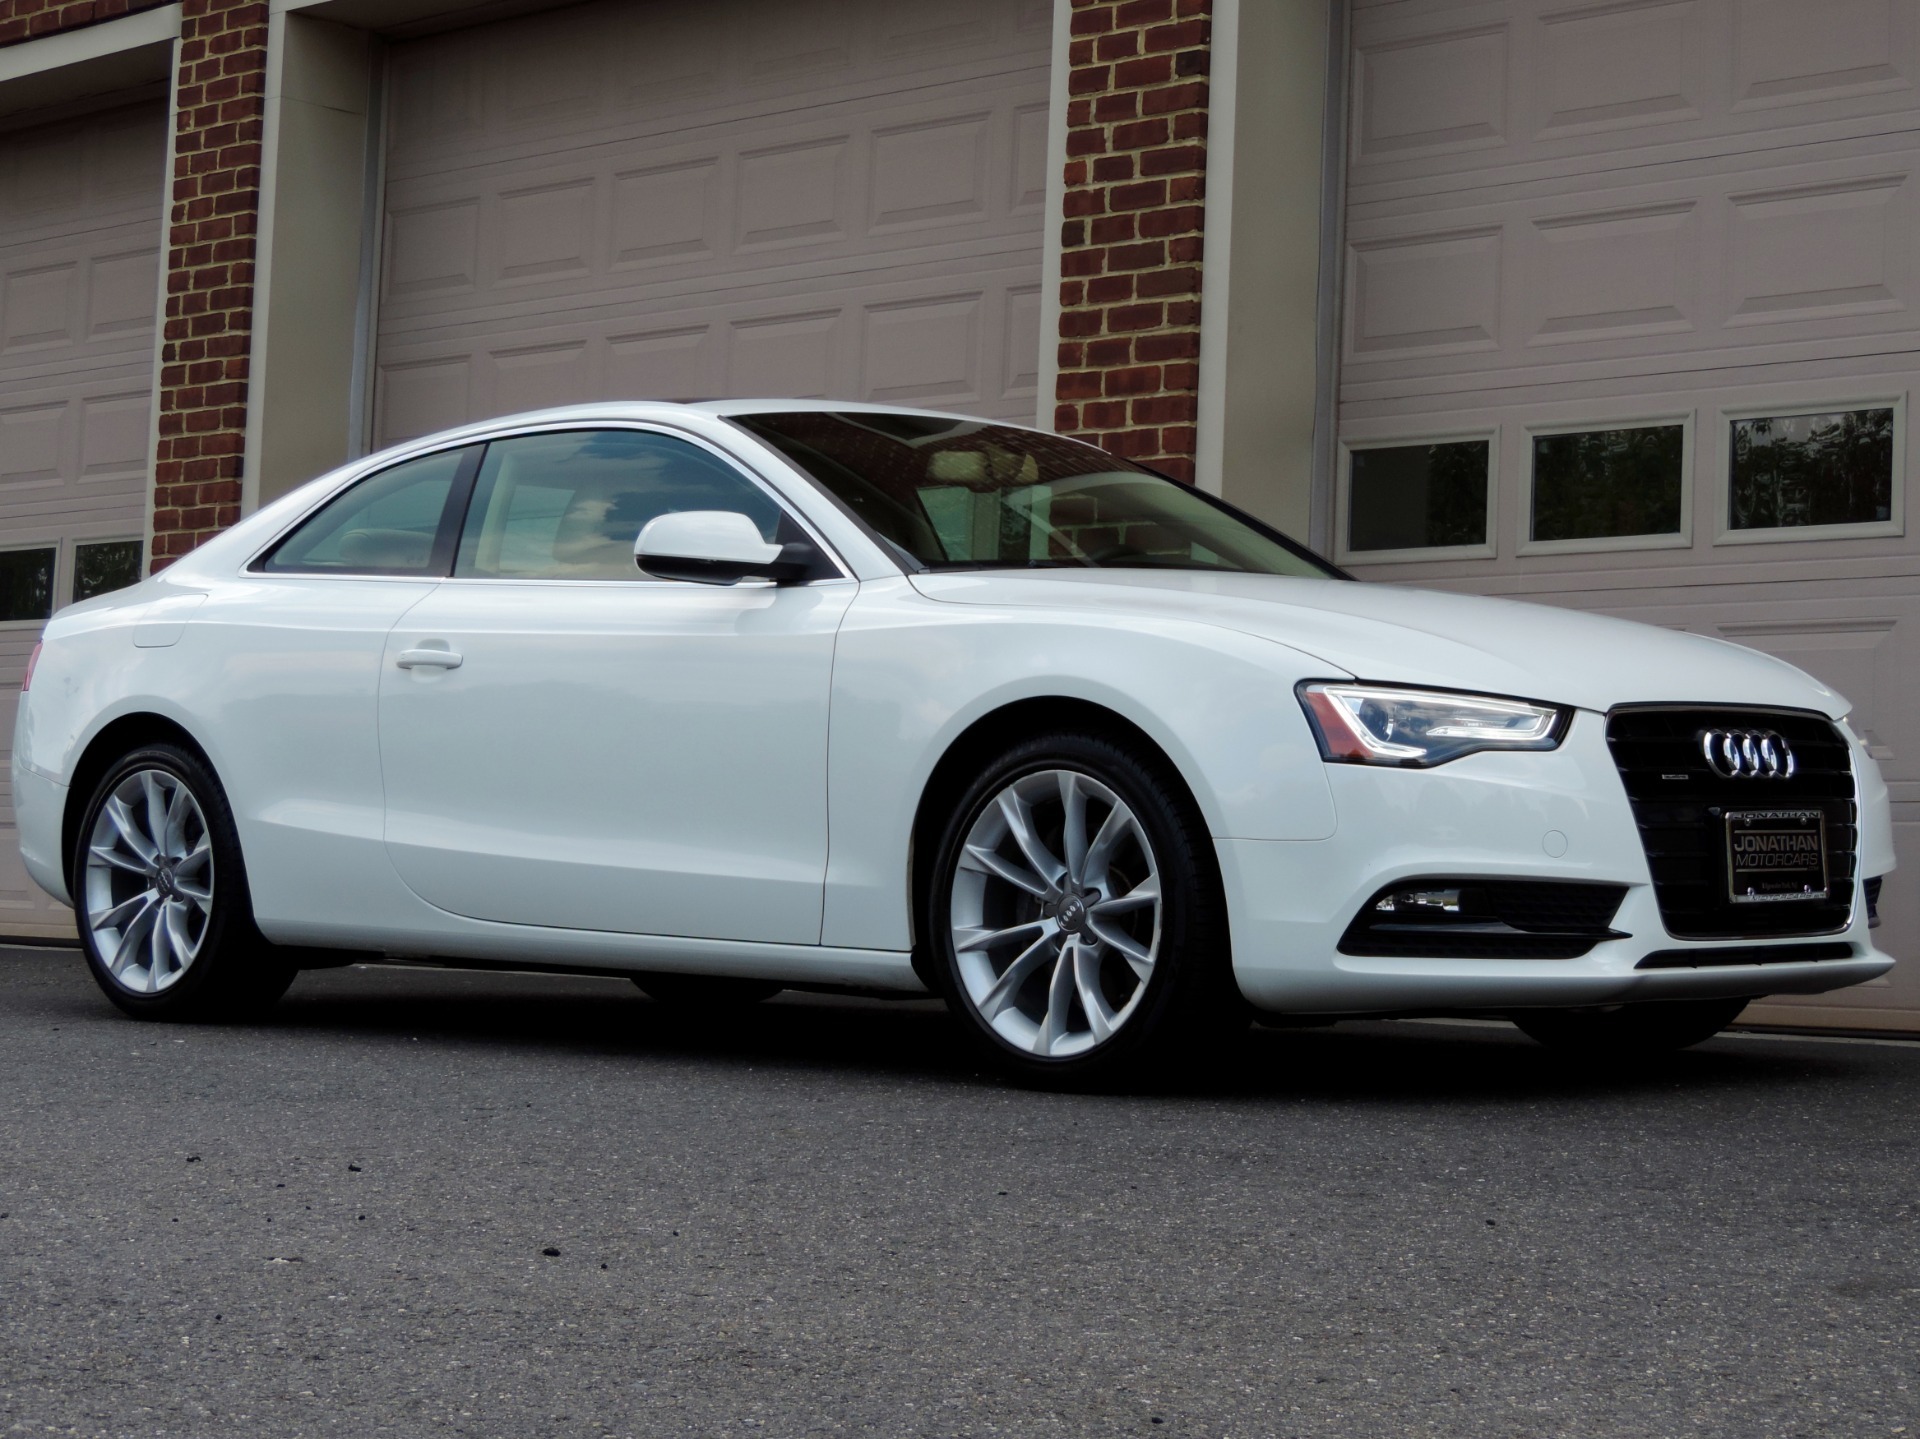 2013 audi a5 2 0t quattro prestige stock 043392 for sale near edgewater park nj nj audi dealer. Black Bedroom Furniture Sets. Home Design Ideas